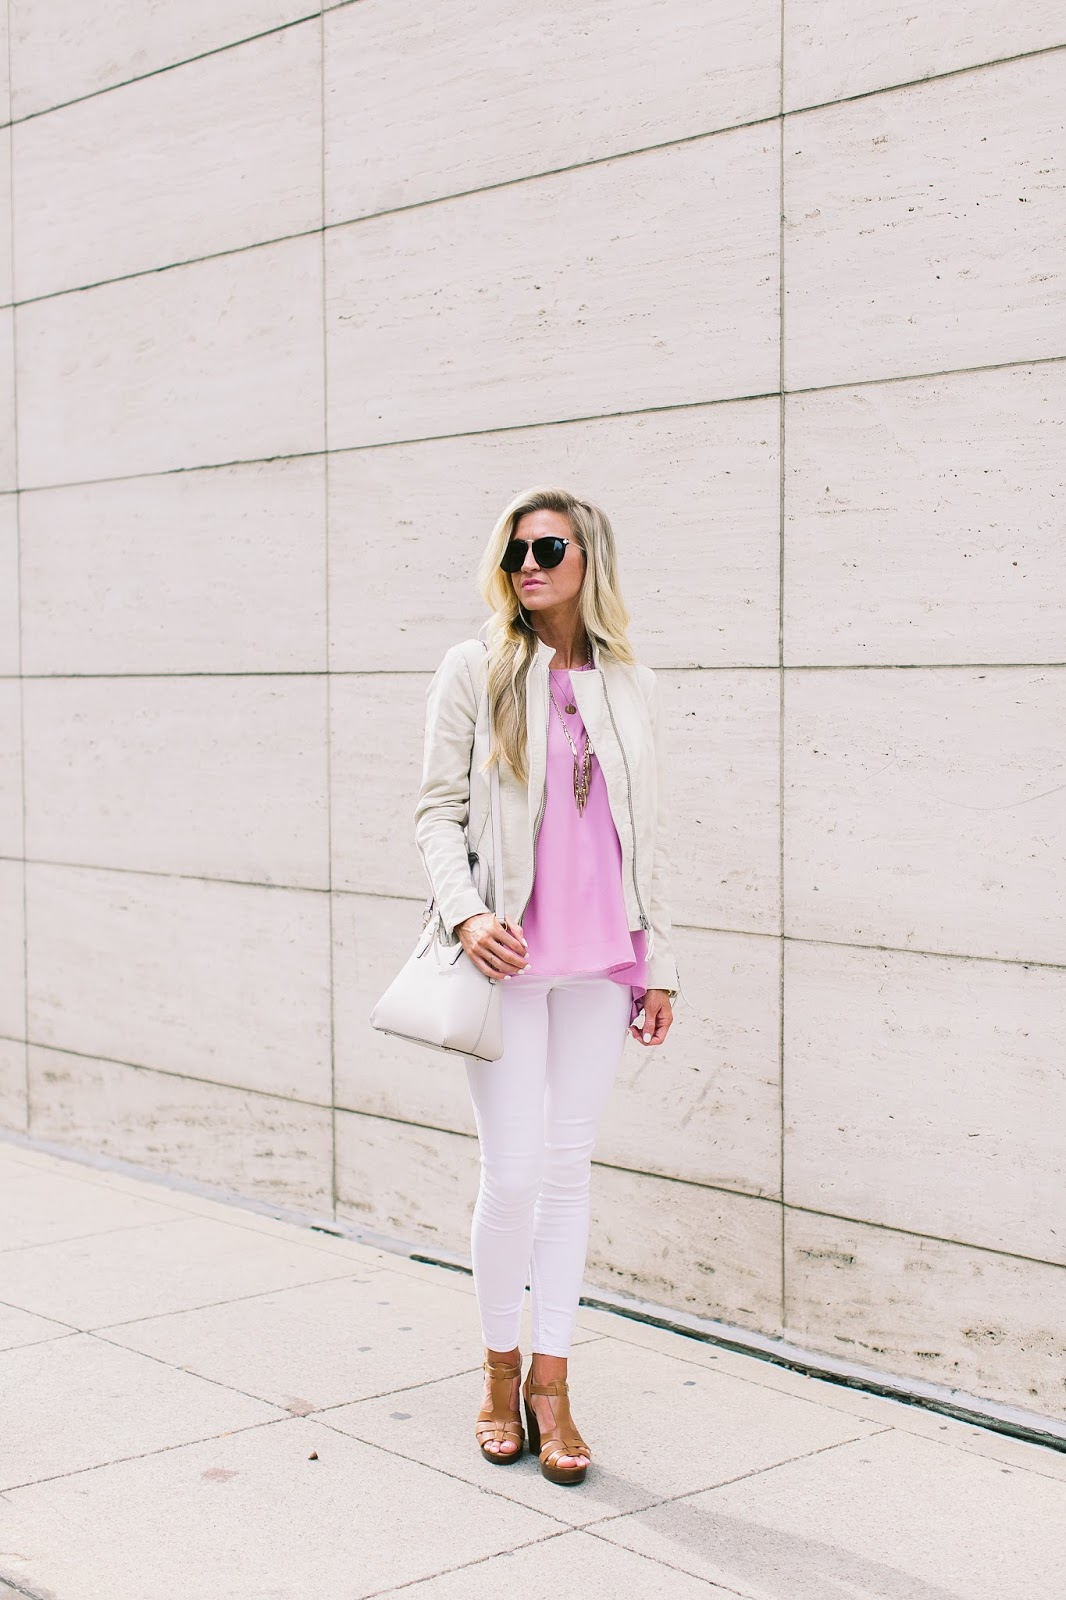 LILAC SPRING + 8 THINGS I LEARNED WHILE ATTENDING THE REWARD STYLE CONFERENCE